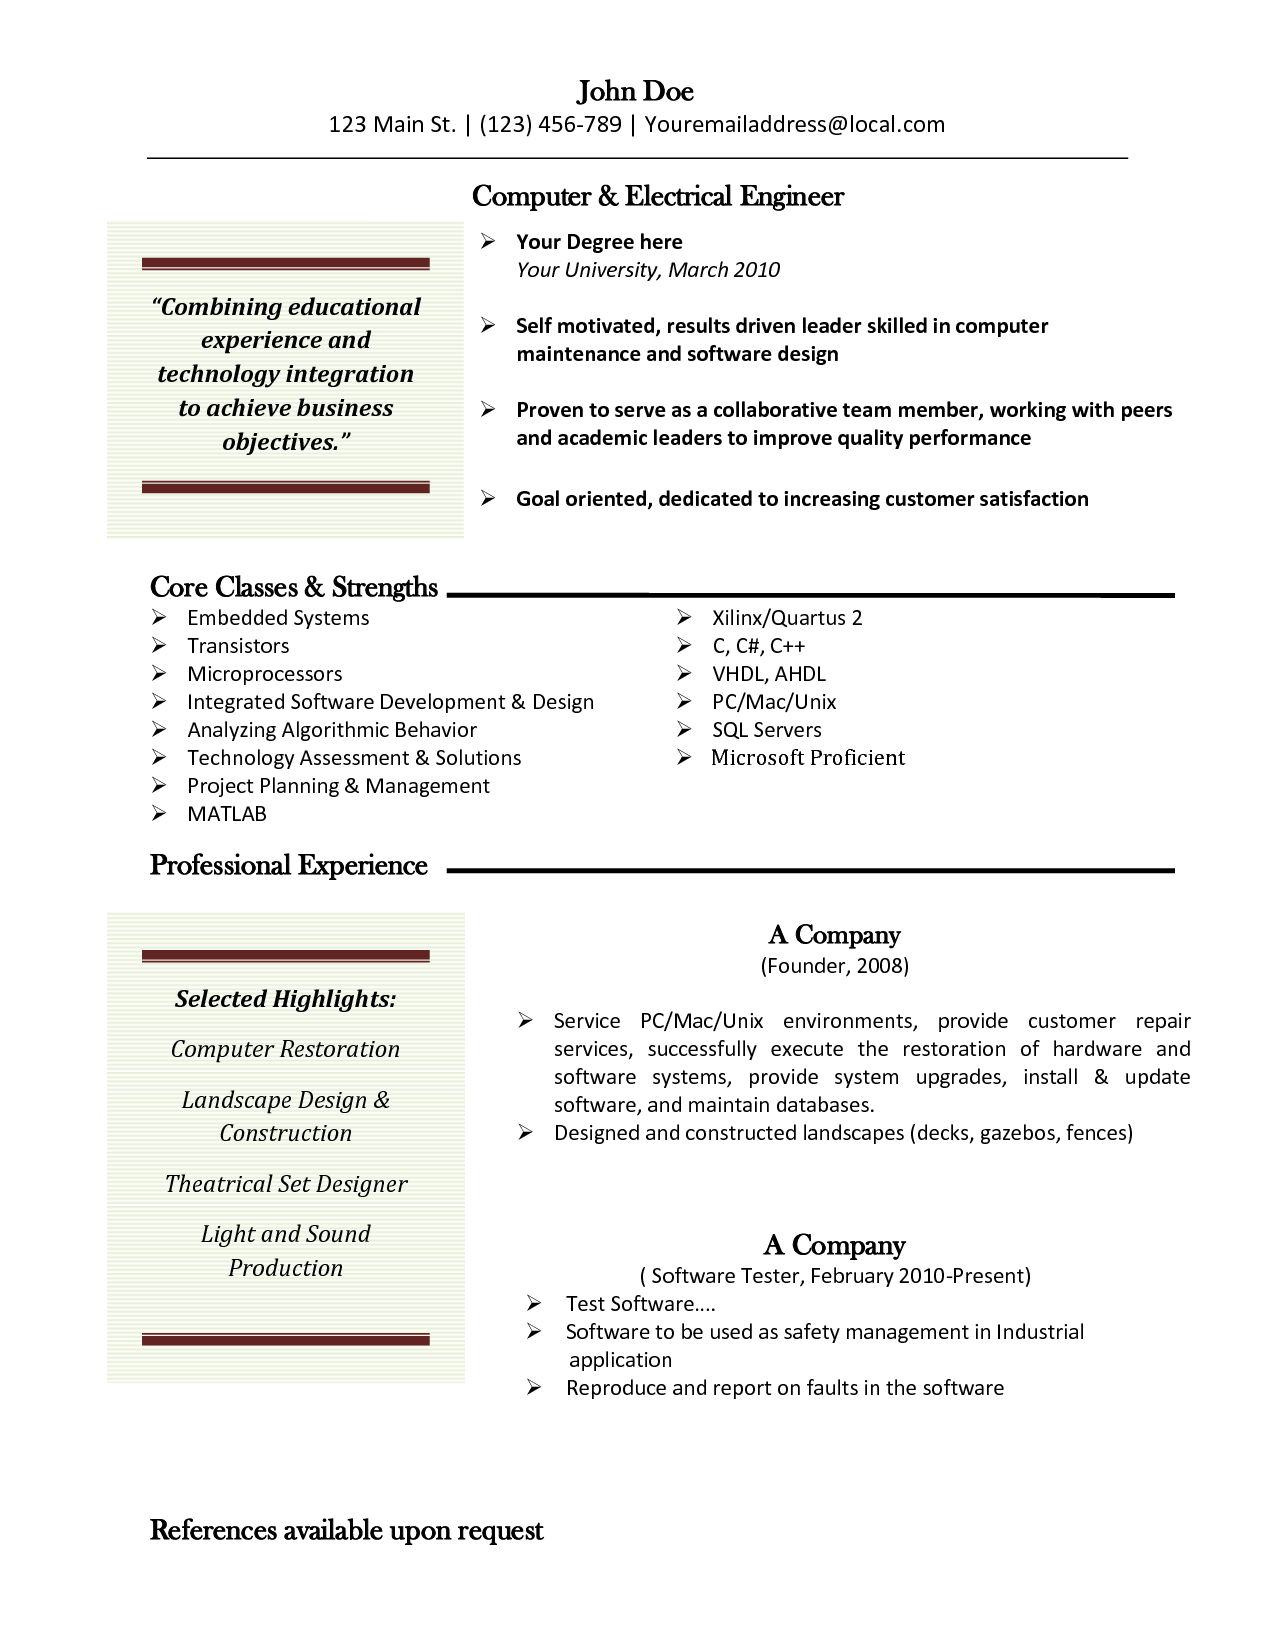 Resume Template For Microsoft Word 2010 Resume Templates For Mac  Httpwwwjobresumewebsiteresume